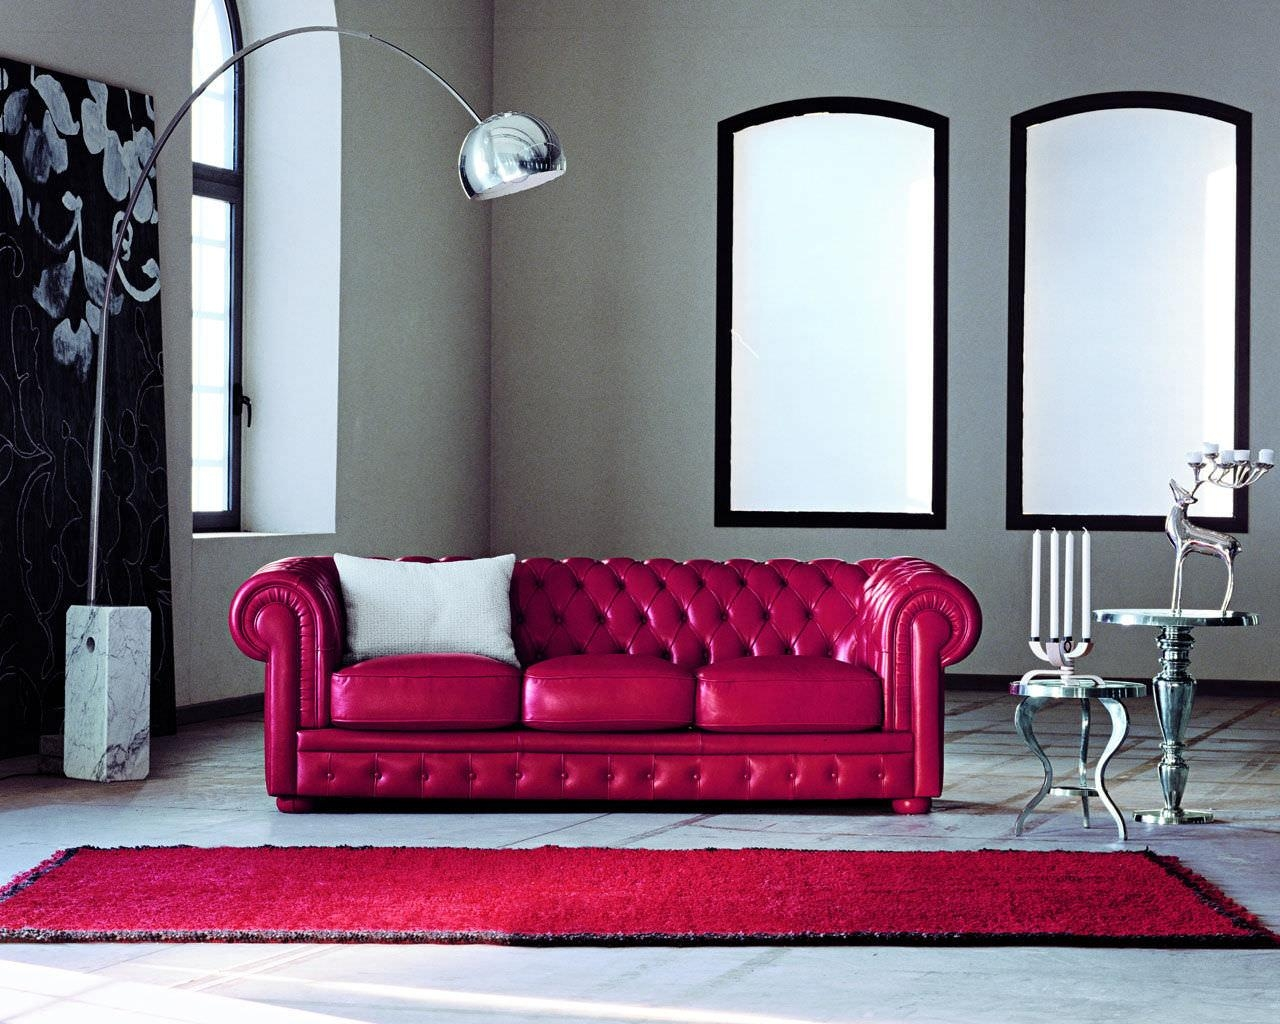 Chesterfield Sofa / Leather / 3 Seater / Red – Alioth – Doimo Sofas With Regard To Red Chesterfield Sofas (Image 3 of 20)